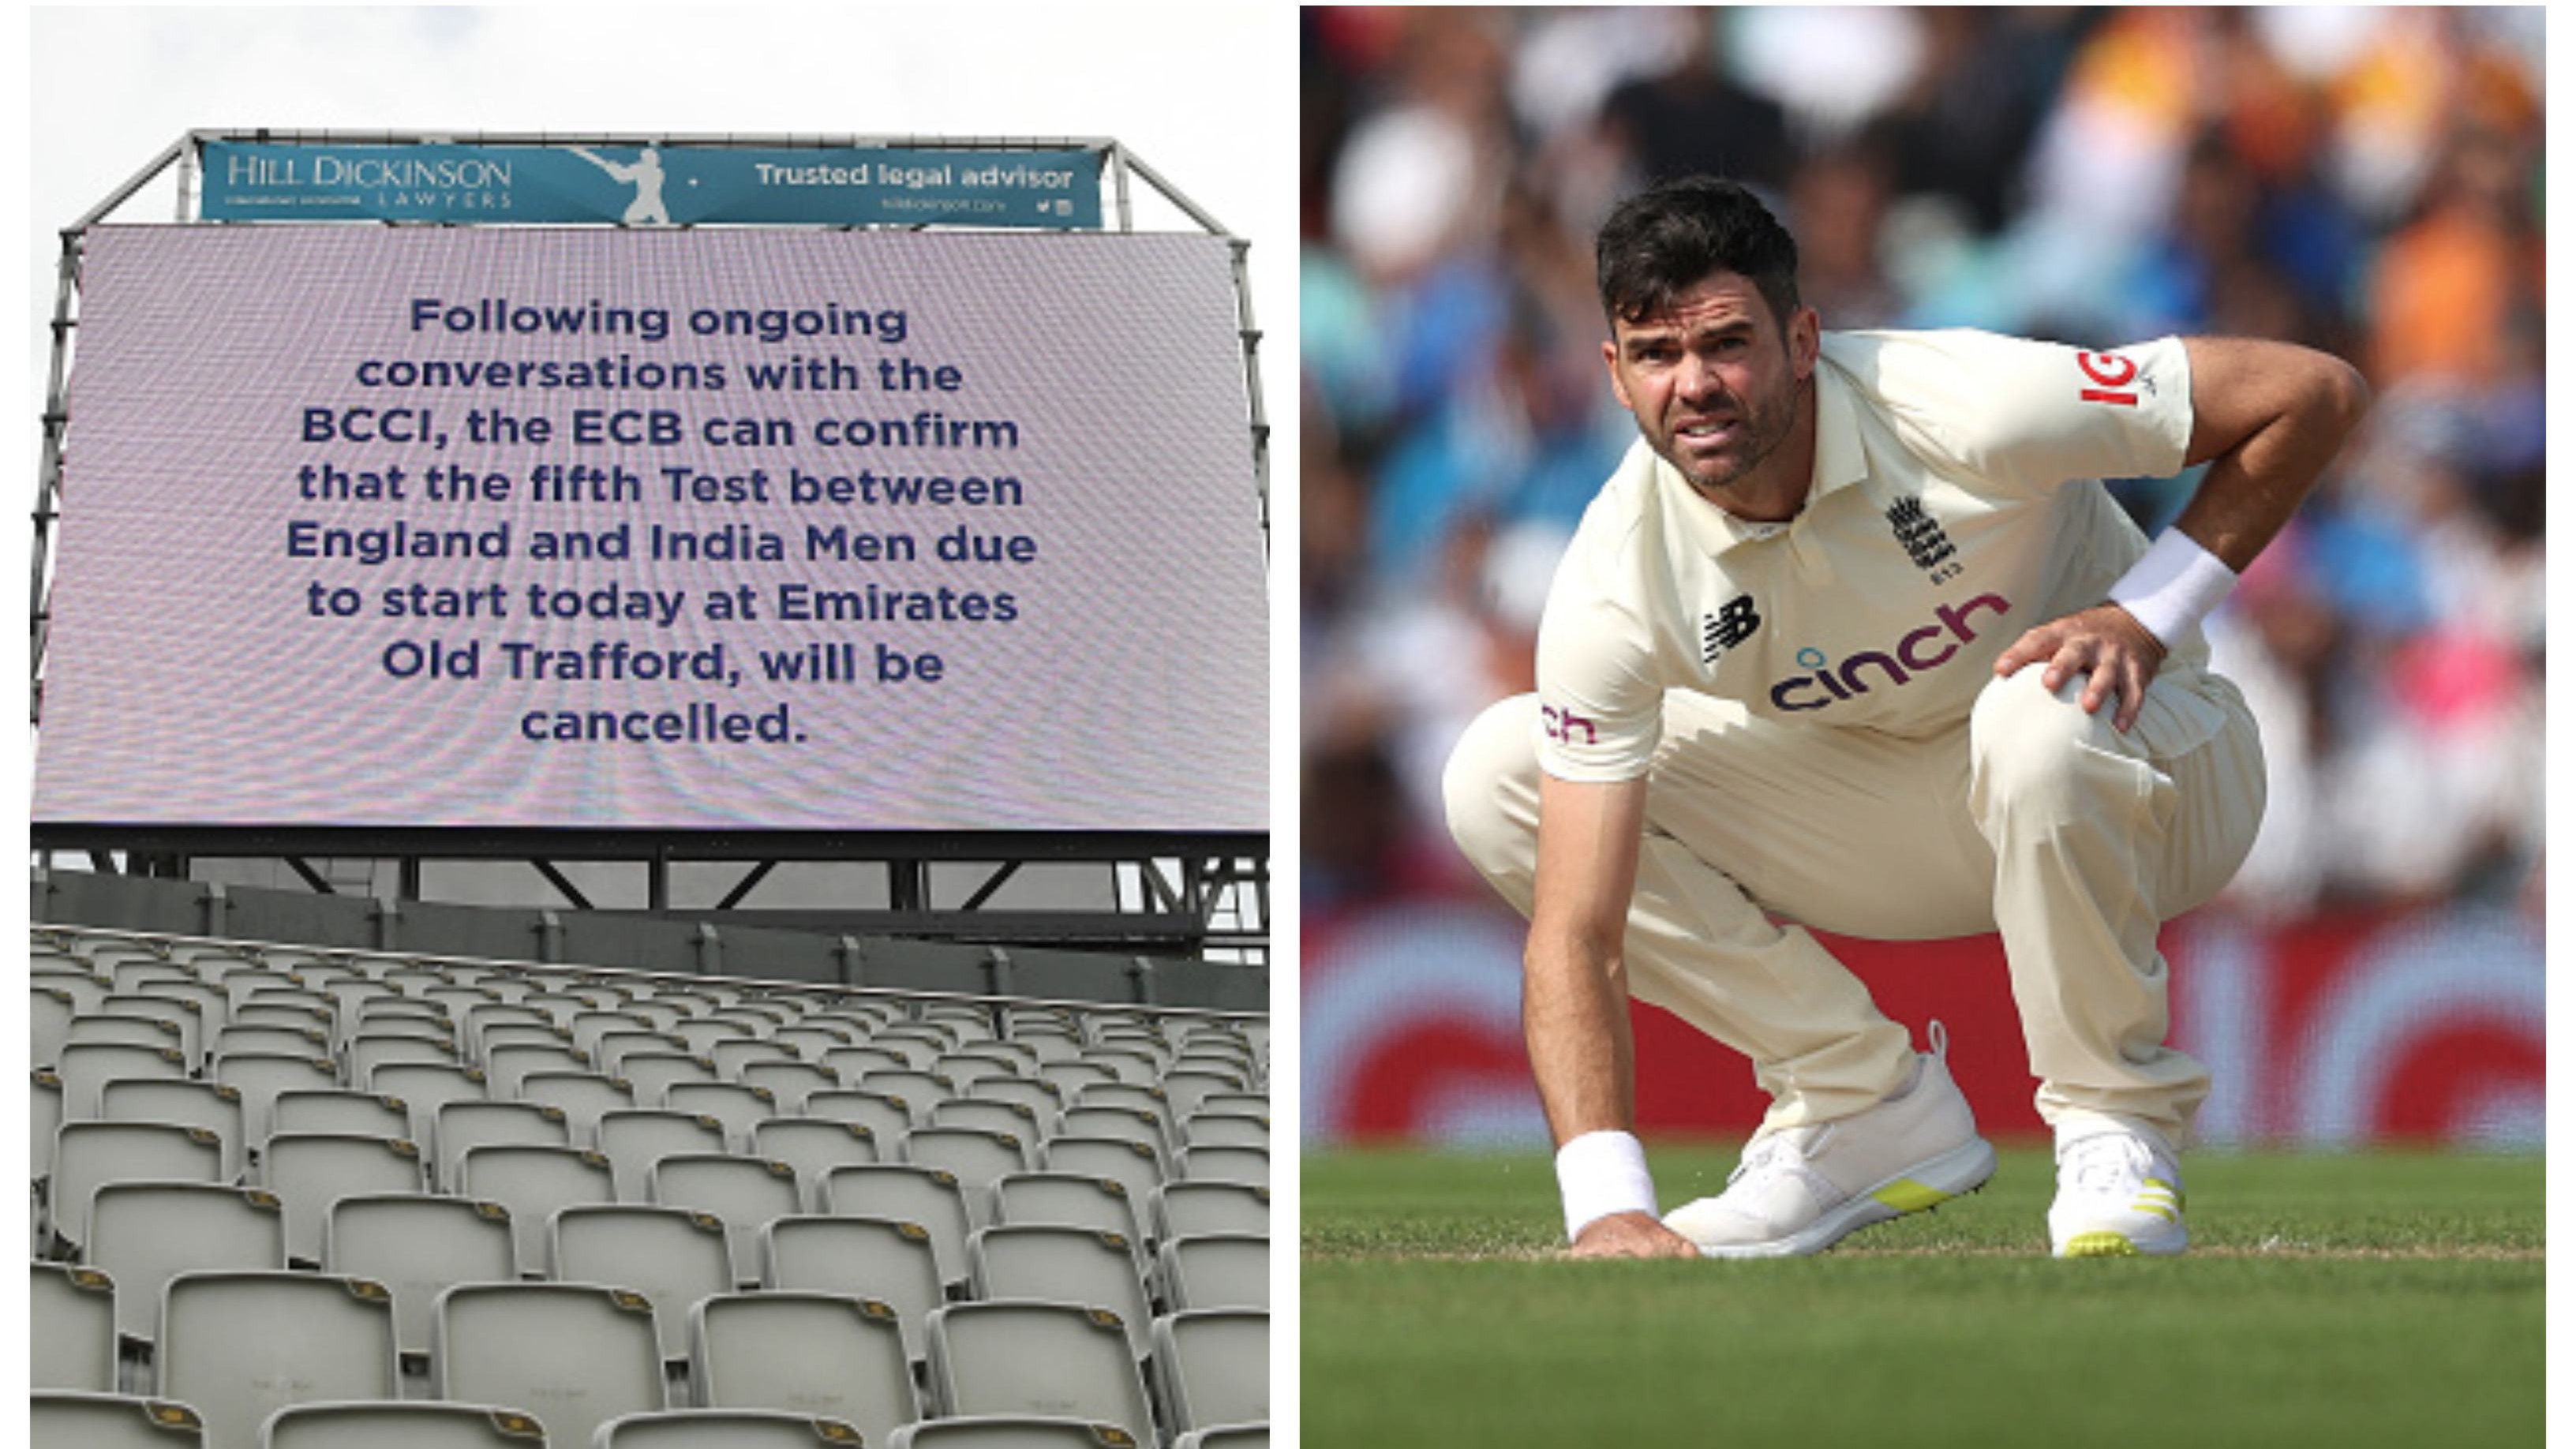 ENG v IND 2021: James Anderson 'gutted' by cancellation of 5th Test at his 'home ground' Old Trafford